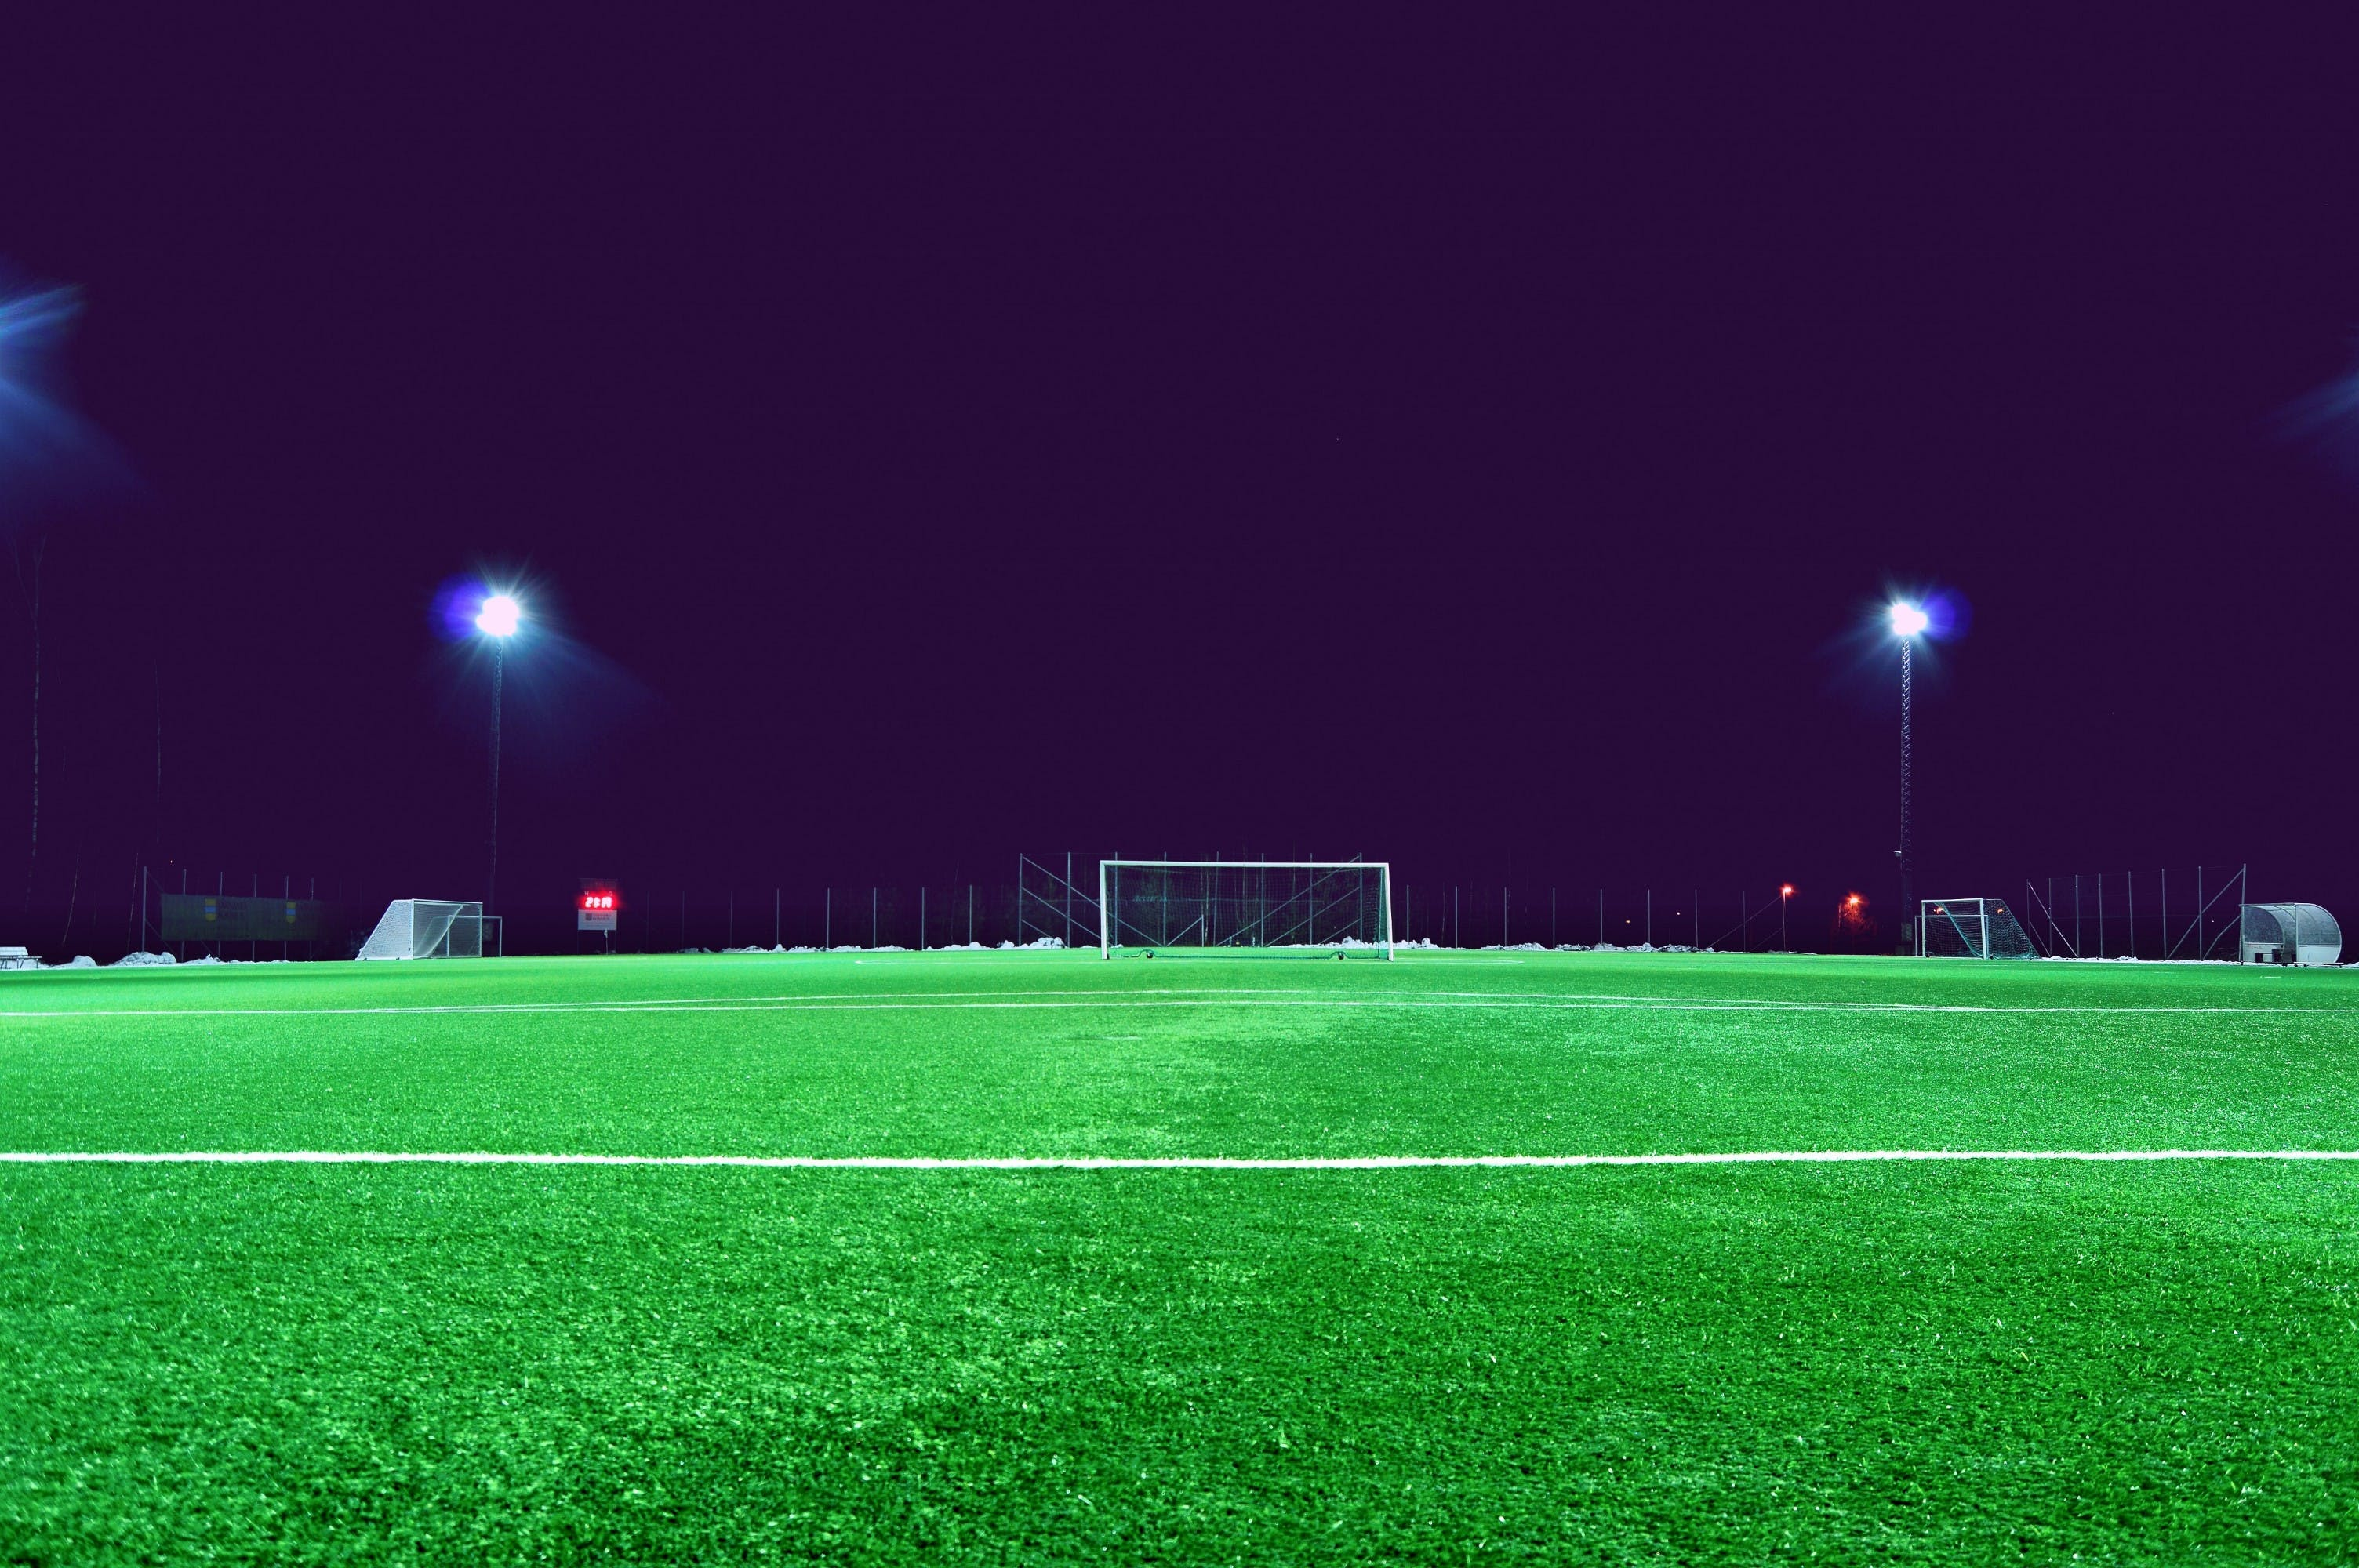 Royalty free images of lights, night, field, grass